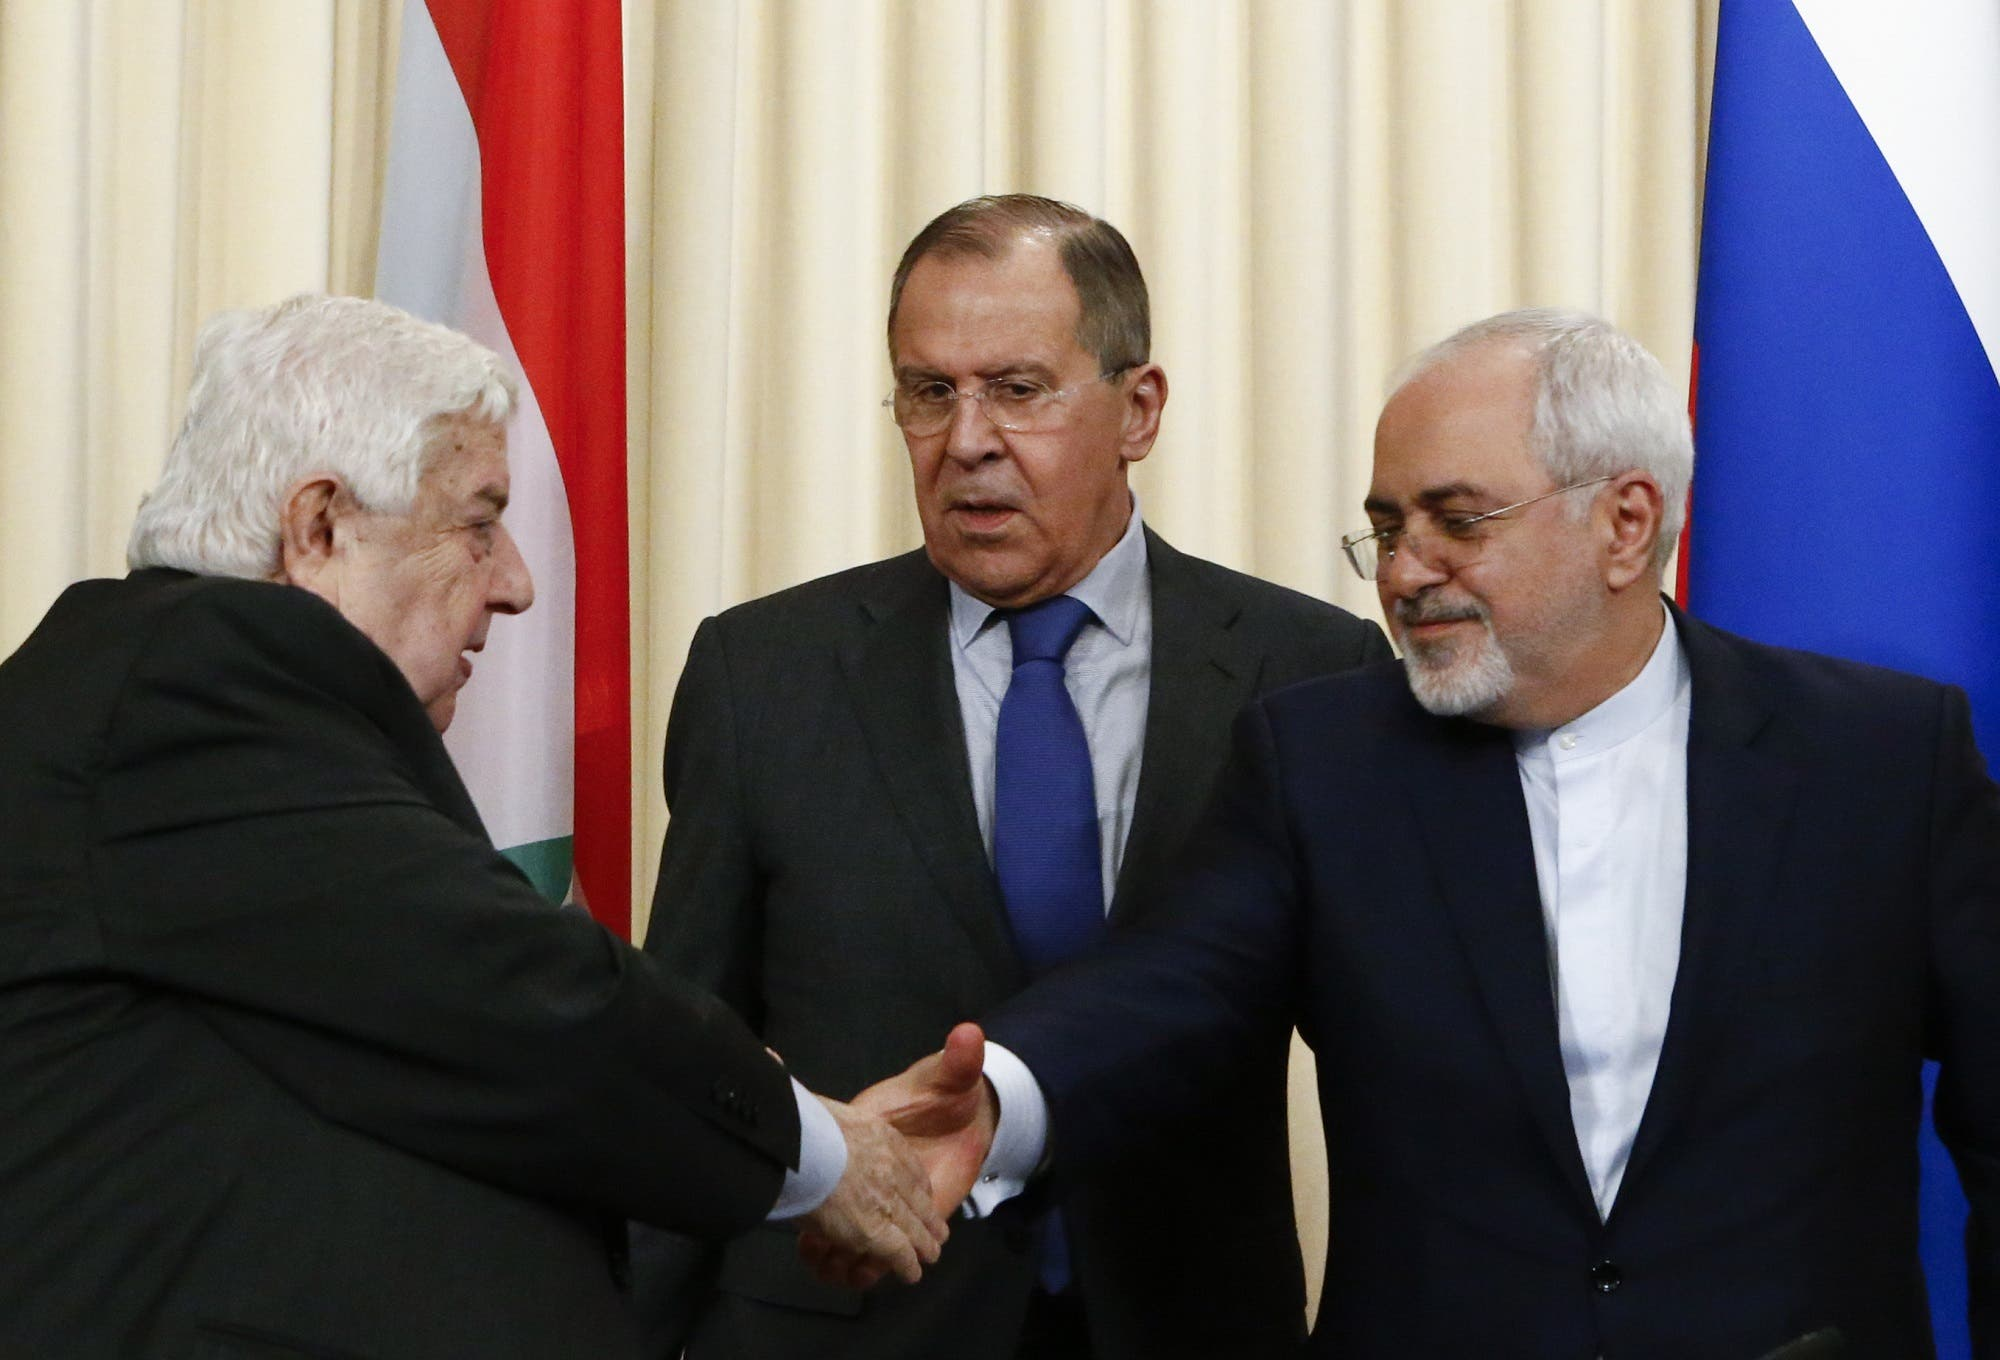 Foreign Ministers, Sergei Lavrov (C) of Russia, Walid al-Muallem (L) of Syria and Mohammad Javad Zarif of Iran, attend a news conference in Moscow, Russia, April 14, 2017. (Reuters)